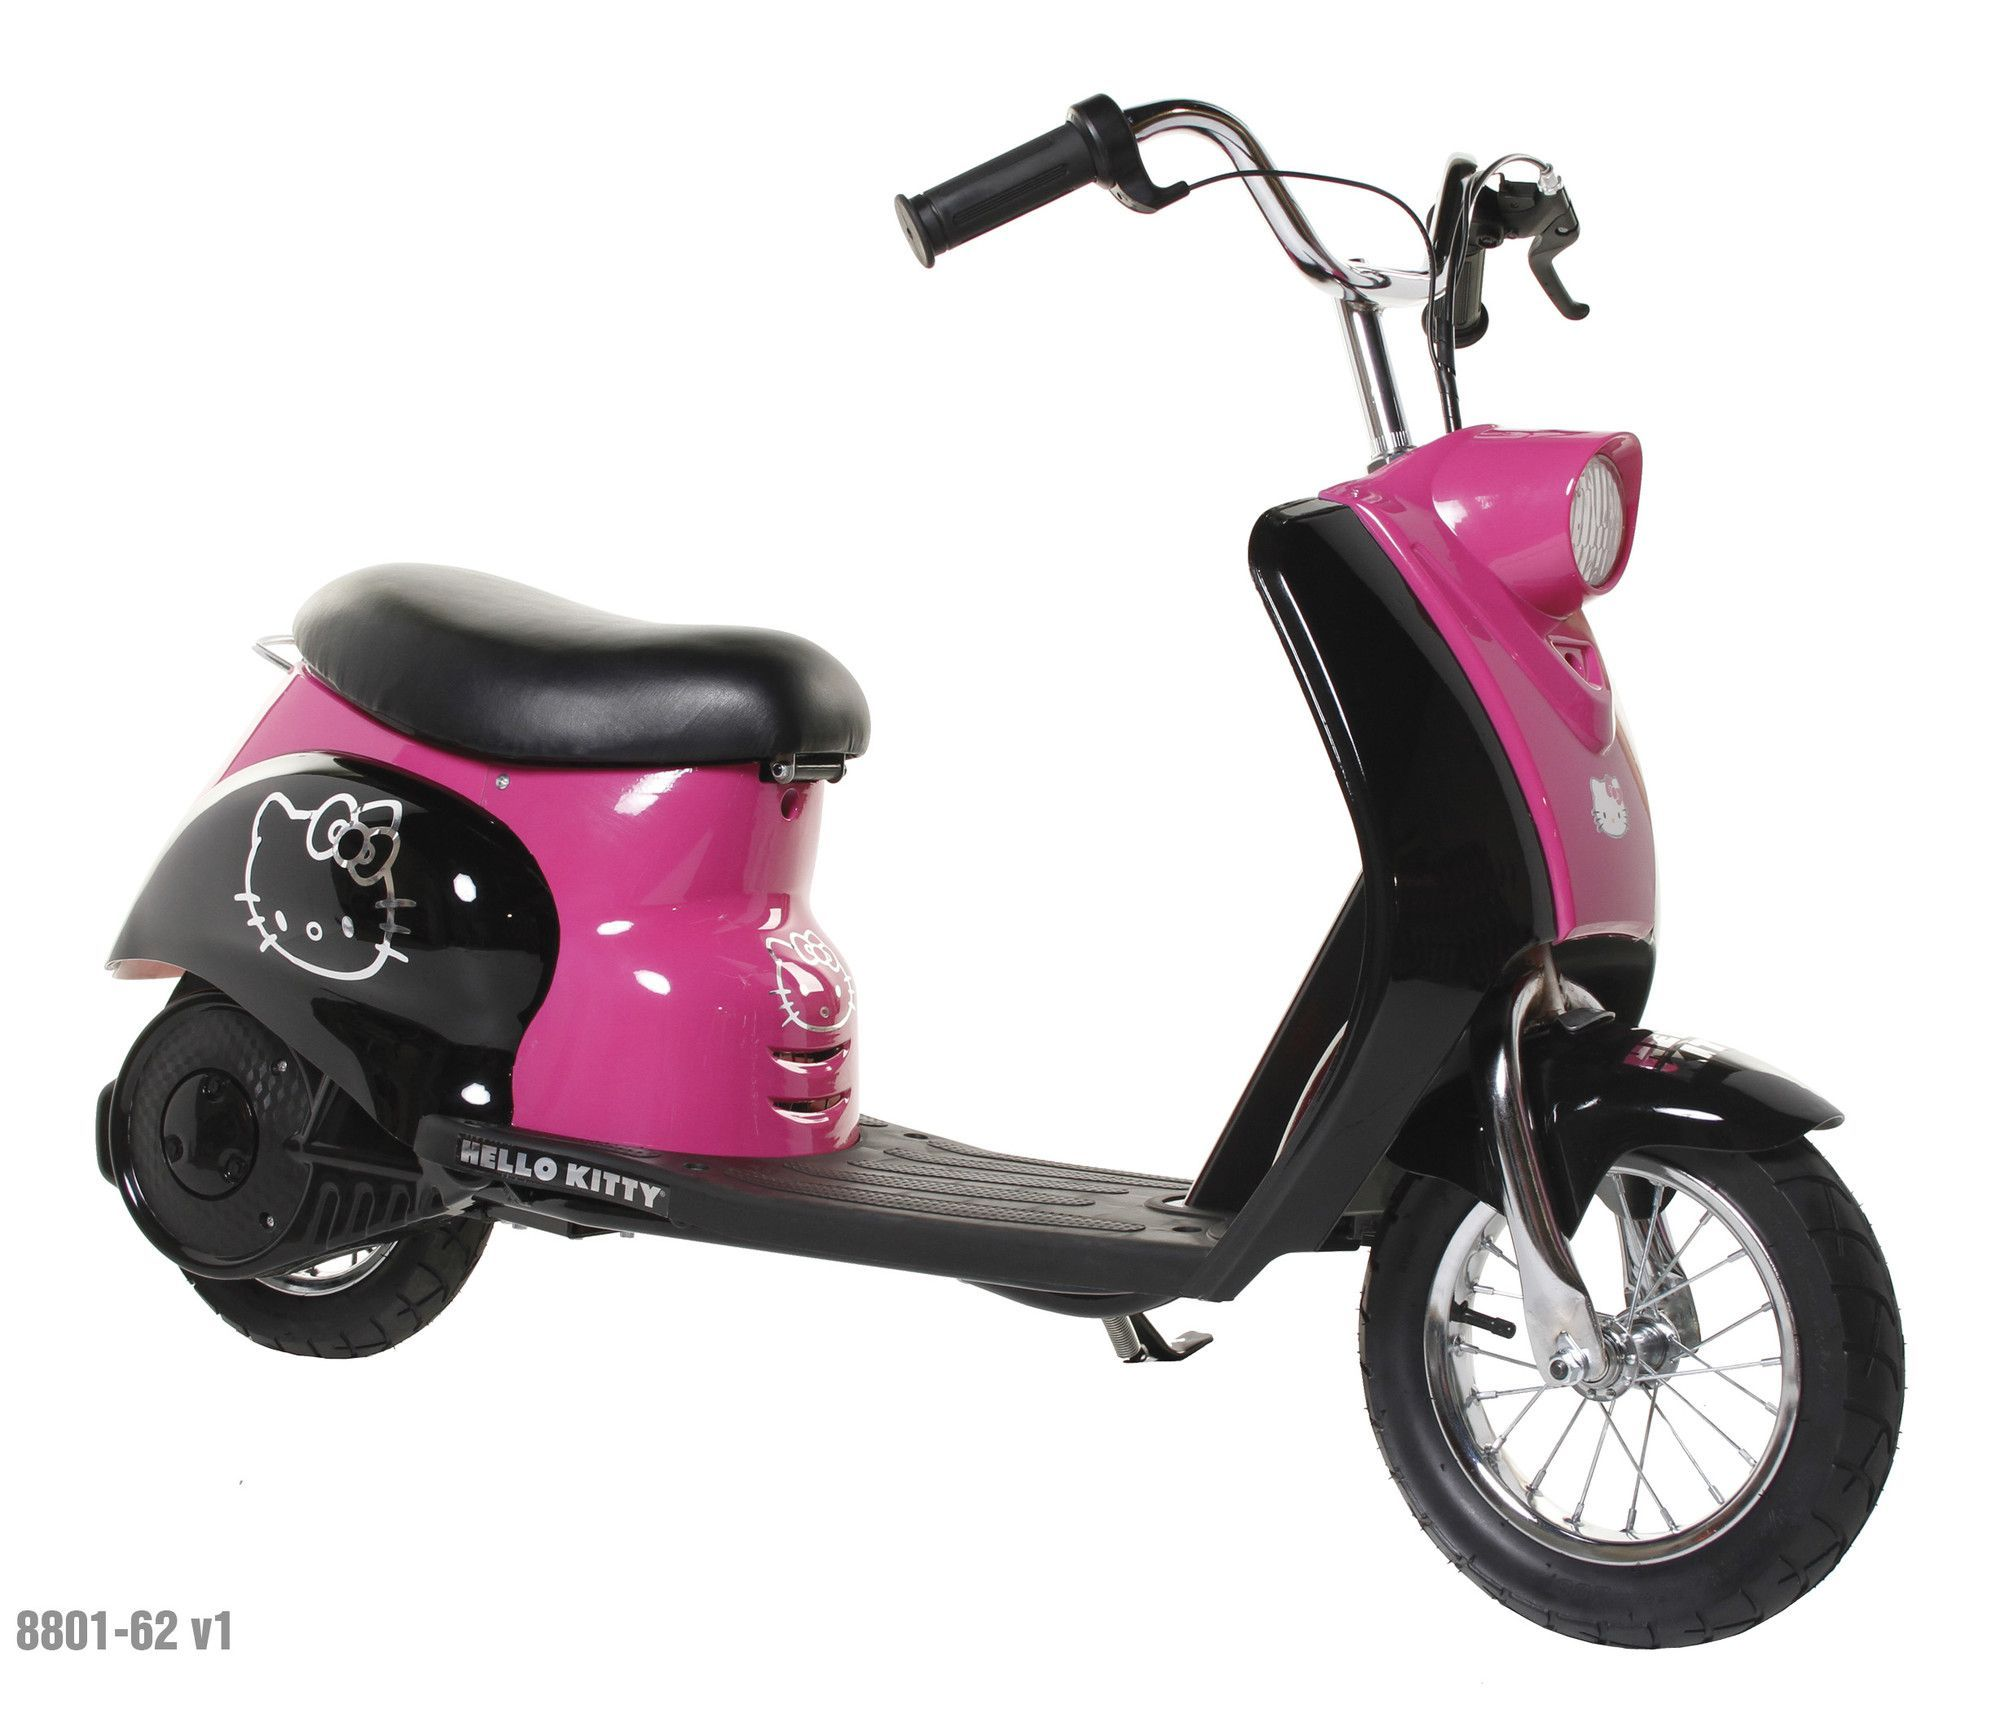 Hello Kitty Electric Car Motor: Electric Scooter, Scooters And Cities